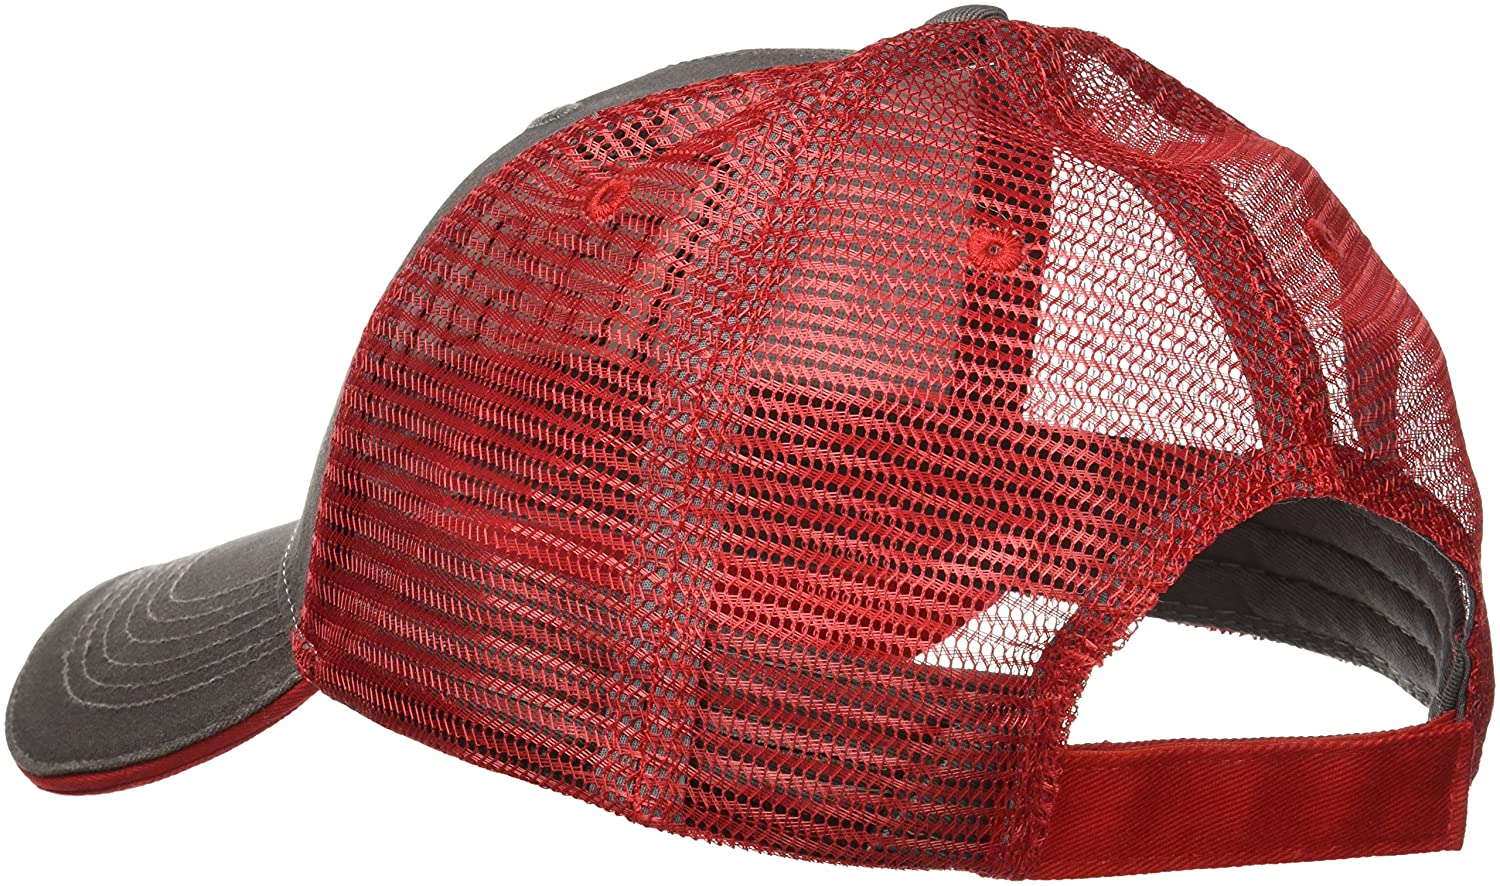 7283e561441 Amazon.com  Case IH Trucker Hat Cap in Charcoal and Red  Clothing